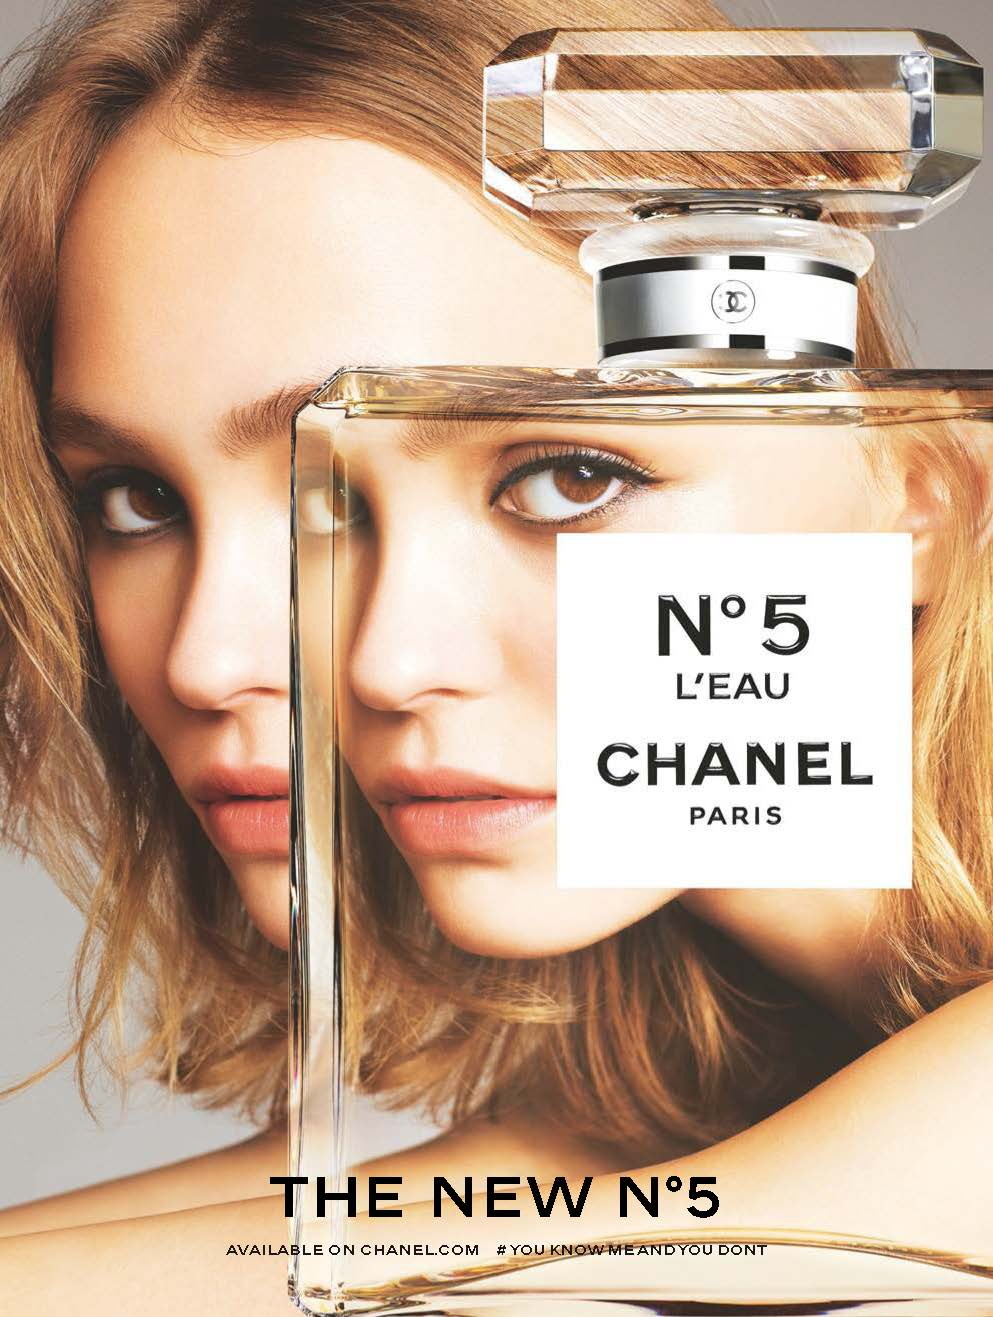 Chanels No 5 Leau Fragrance Campaign With Lily Rose Depp